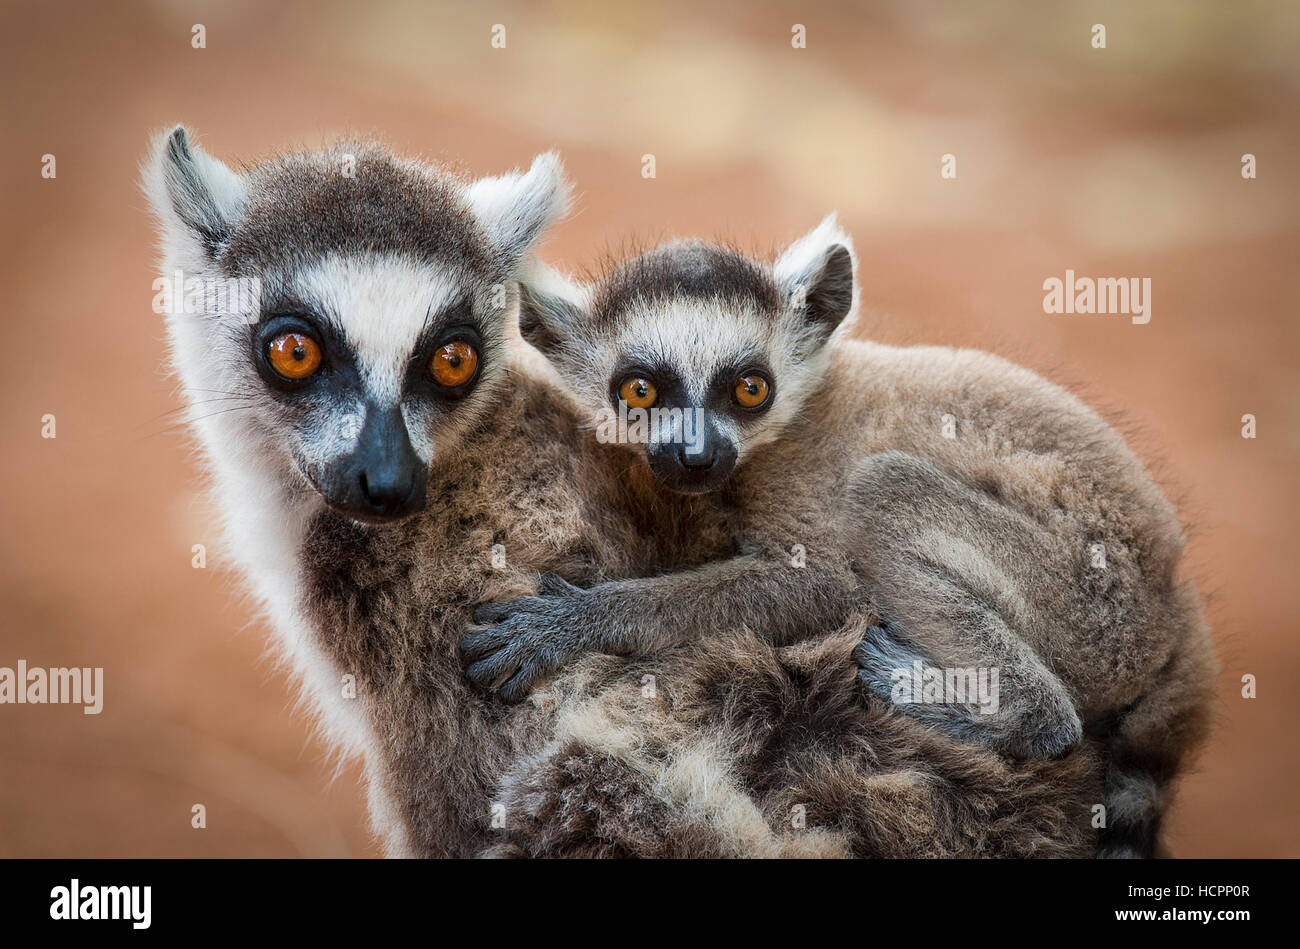 Ring-tailed lemur mother with infant on her back - Stock Image